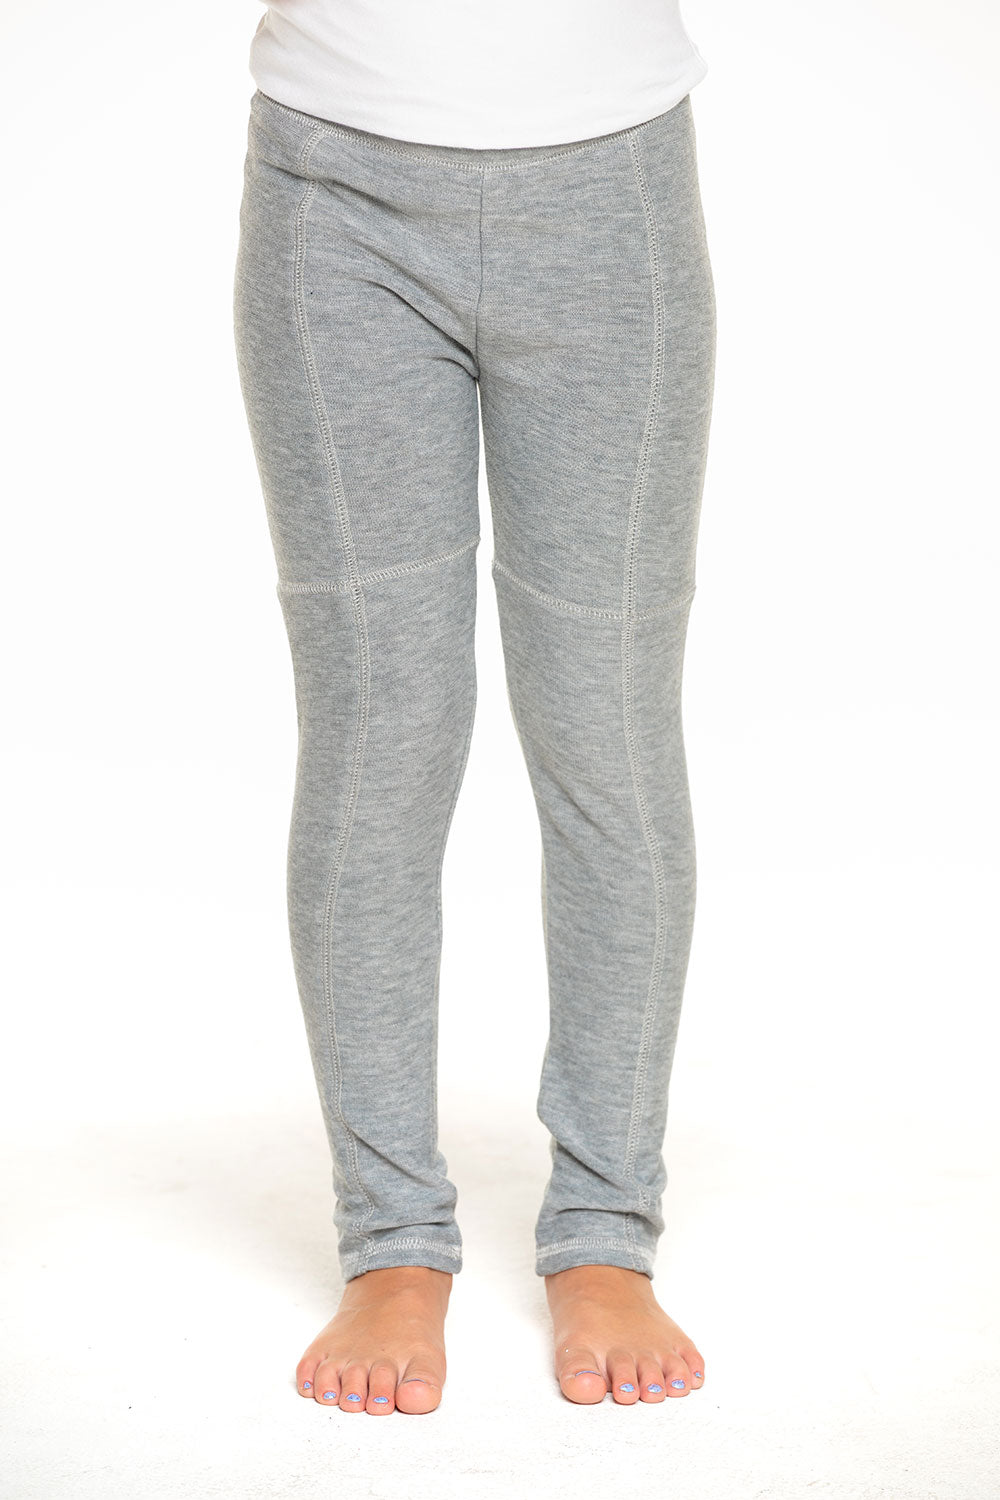 Cozy Knit Seamed Panel Legging in Heather Grey [product_type] chaserbrand4.myshopify.com